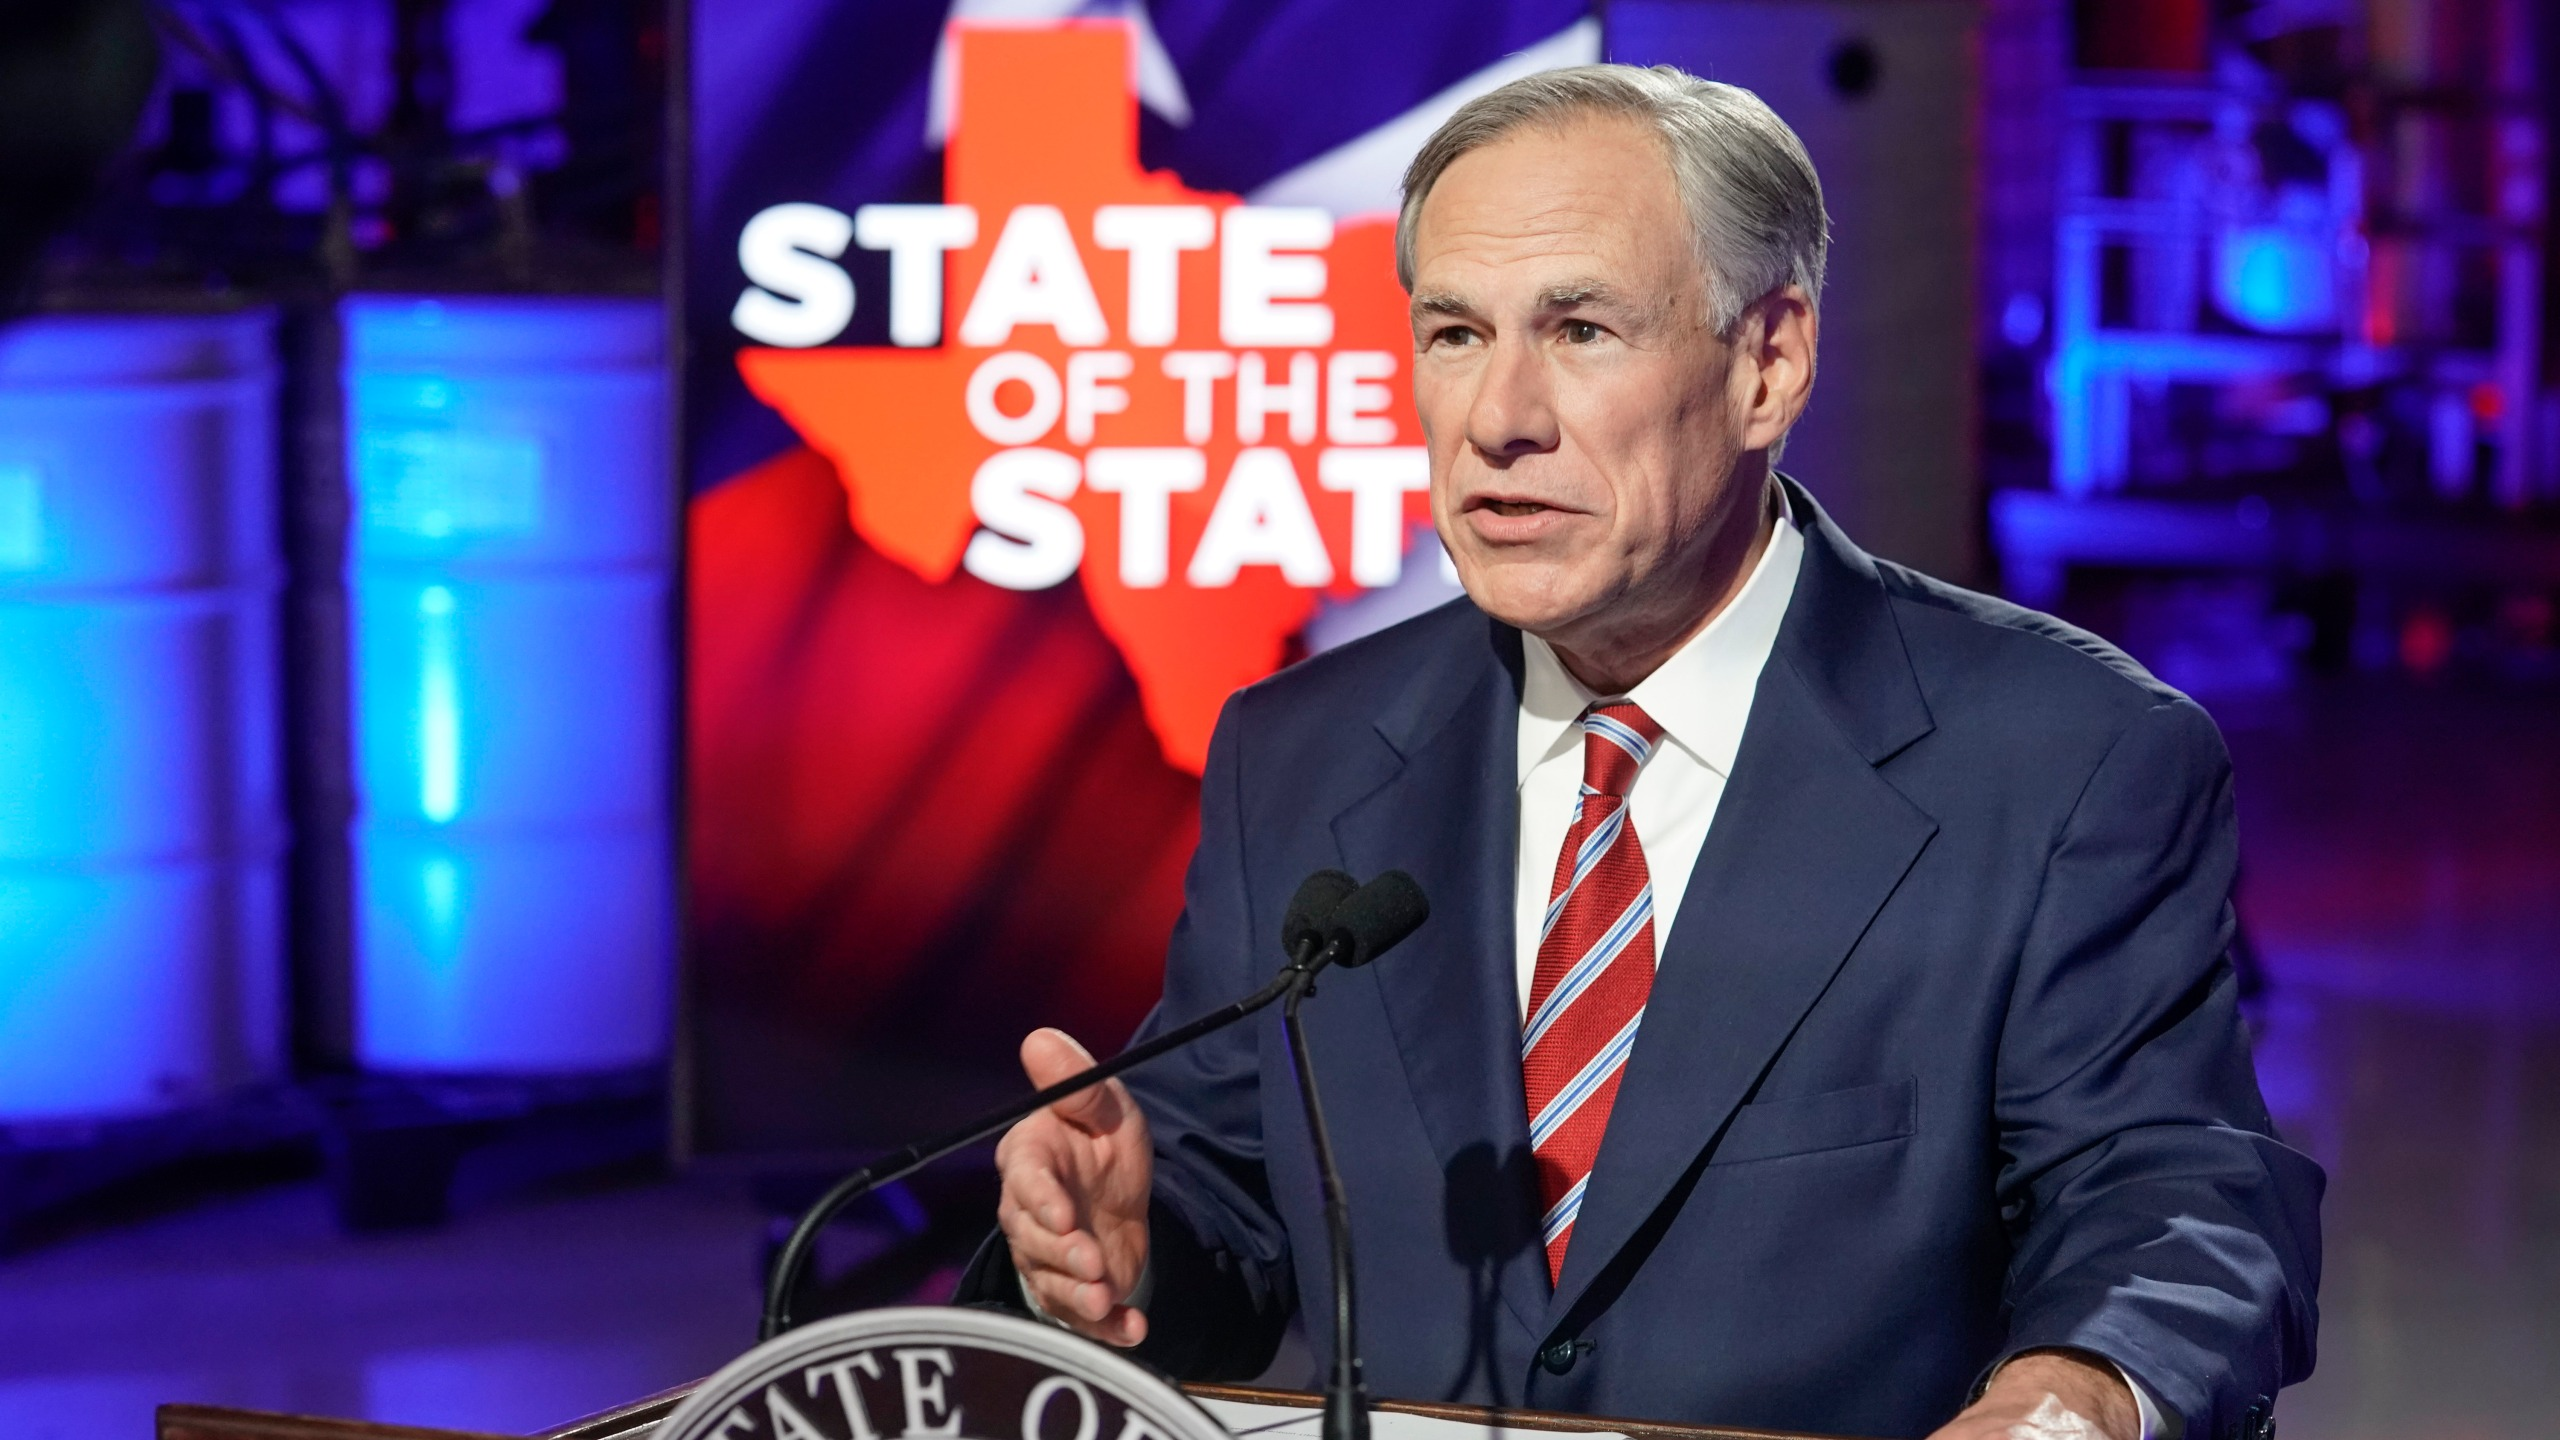 Texas Governor Greg Abbott prepares to deliver his State of the State speech at Visionary Fiber Technologies outside Lockhart, TX. Abbott is proposing expansion of telemedicine and increased broadband access for rural Texans among other policies. (Bob Daemmrich for Nexstar)